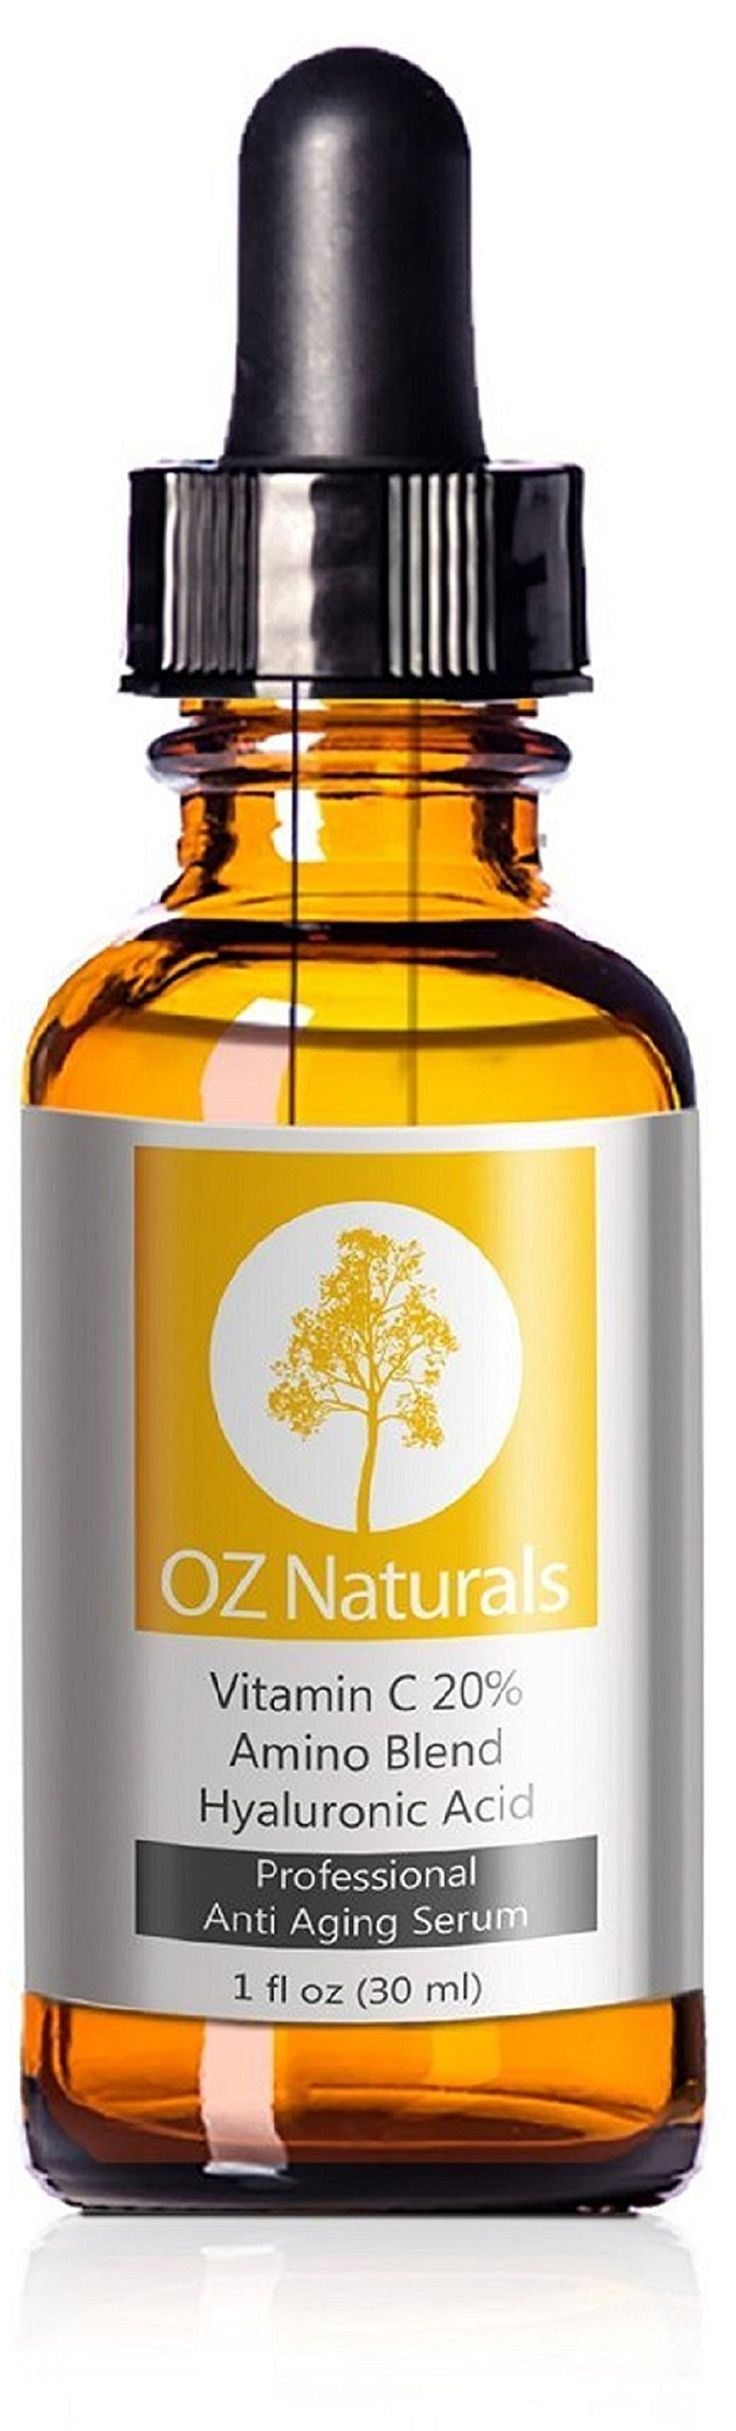 OZ Naturals - THE BEST Vitamin C Serum For Your Face - Organic Vitamin C + Amino + Hyaluronic Acid Serum- Clinical Strength 20% Vitamin C with Vegan Hyaluronic Acid Leaves Your Skin Radiant & More Youthful By Neutralizing Free Radicals. This Anti Aging Serum Will Finally Give You The Results You've Been Looking For - ALLURE MAGAZINE'S Best In Beauty Vitamin C Serum -100% Satisfaction GUARANTEED